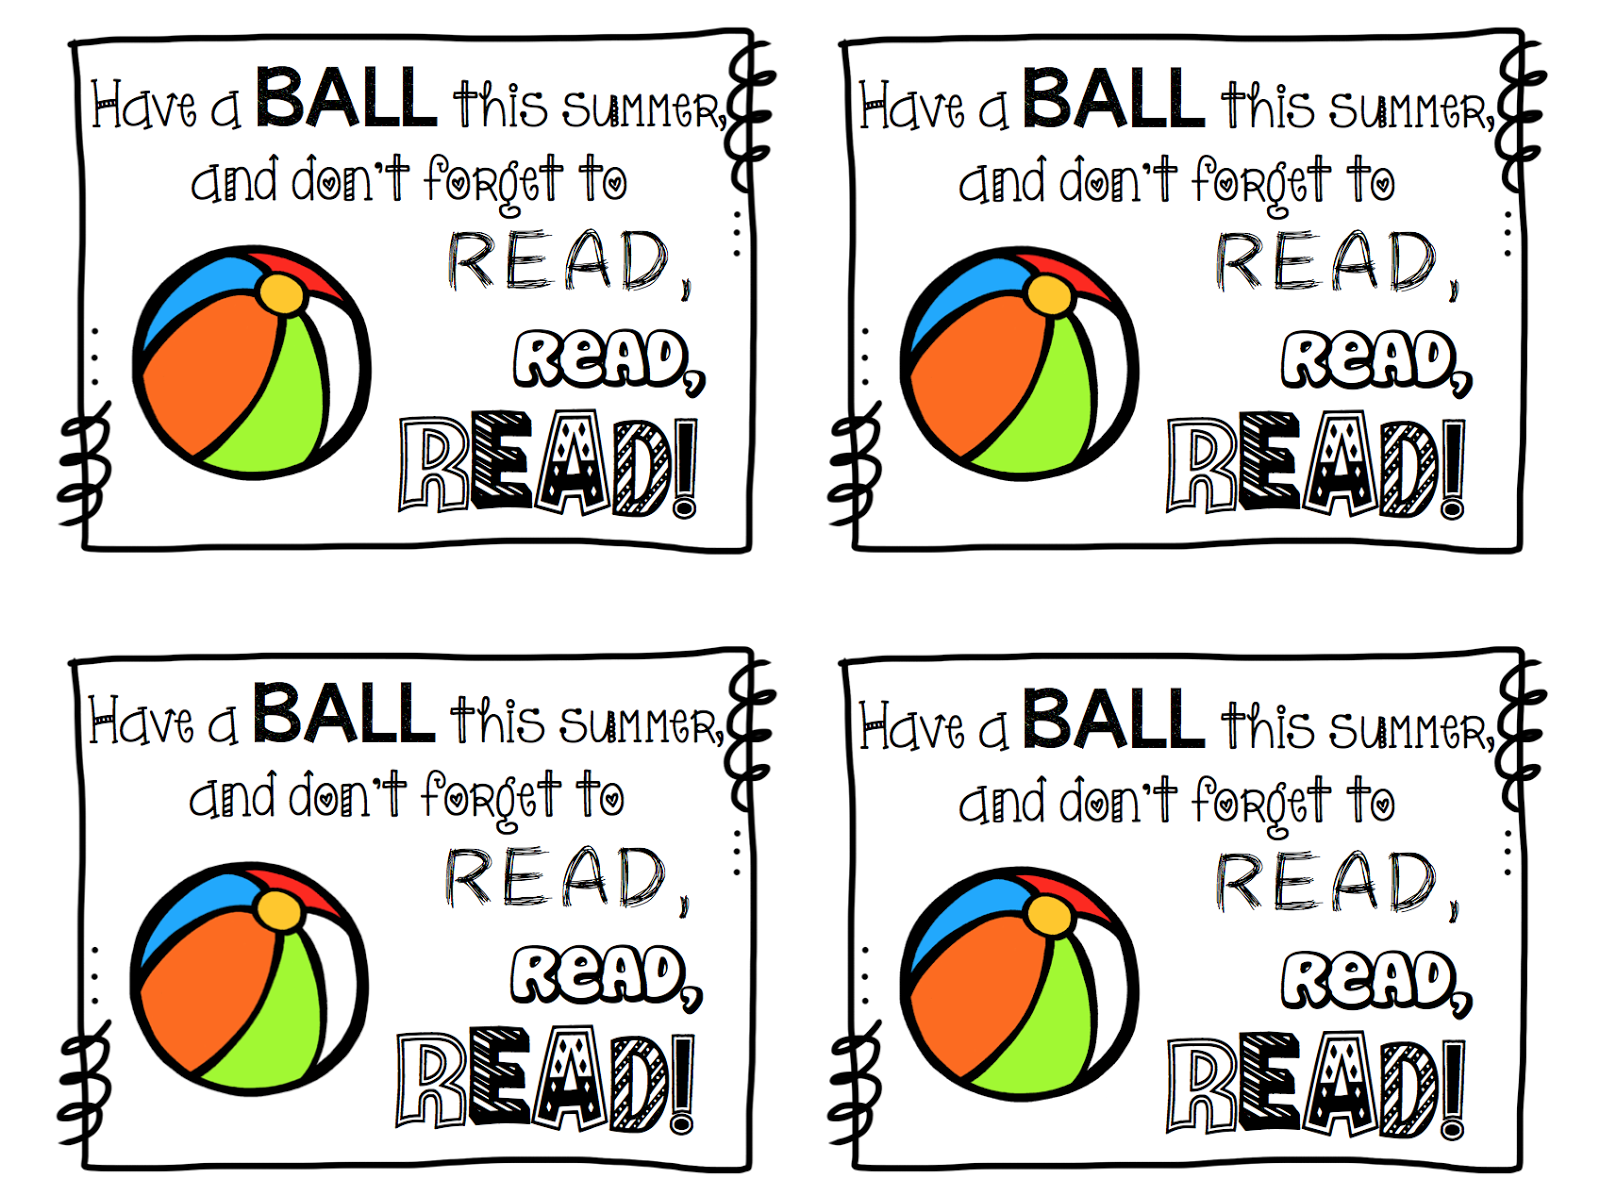 photo relating to Have a Ball This Summer Printable titled Incorporate a BALL this summer time! TheHappyTeacher